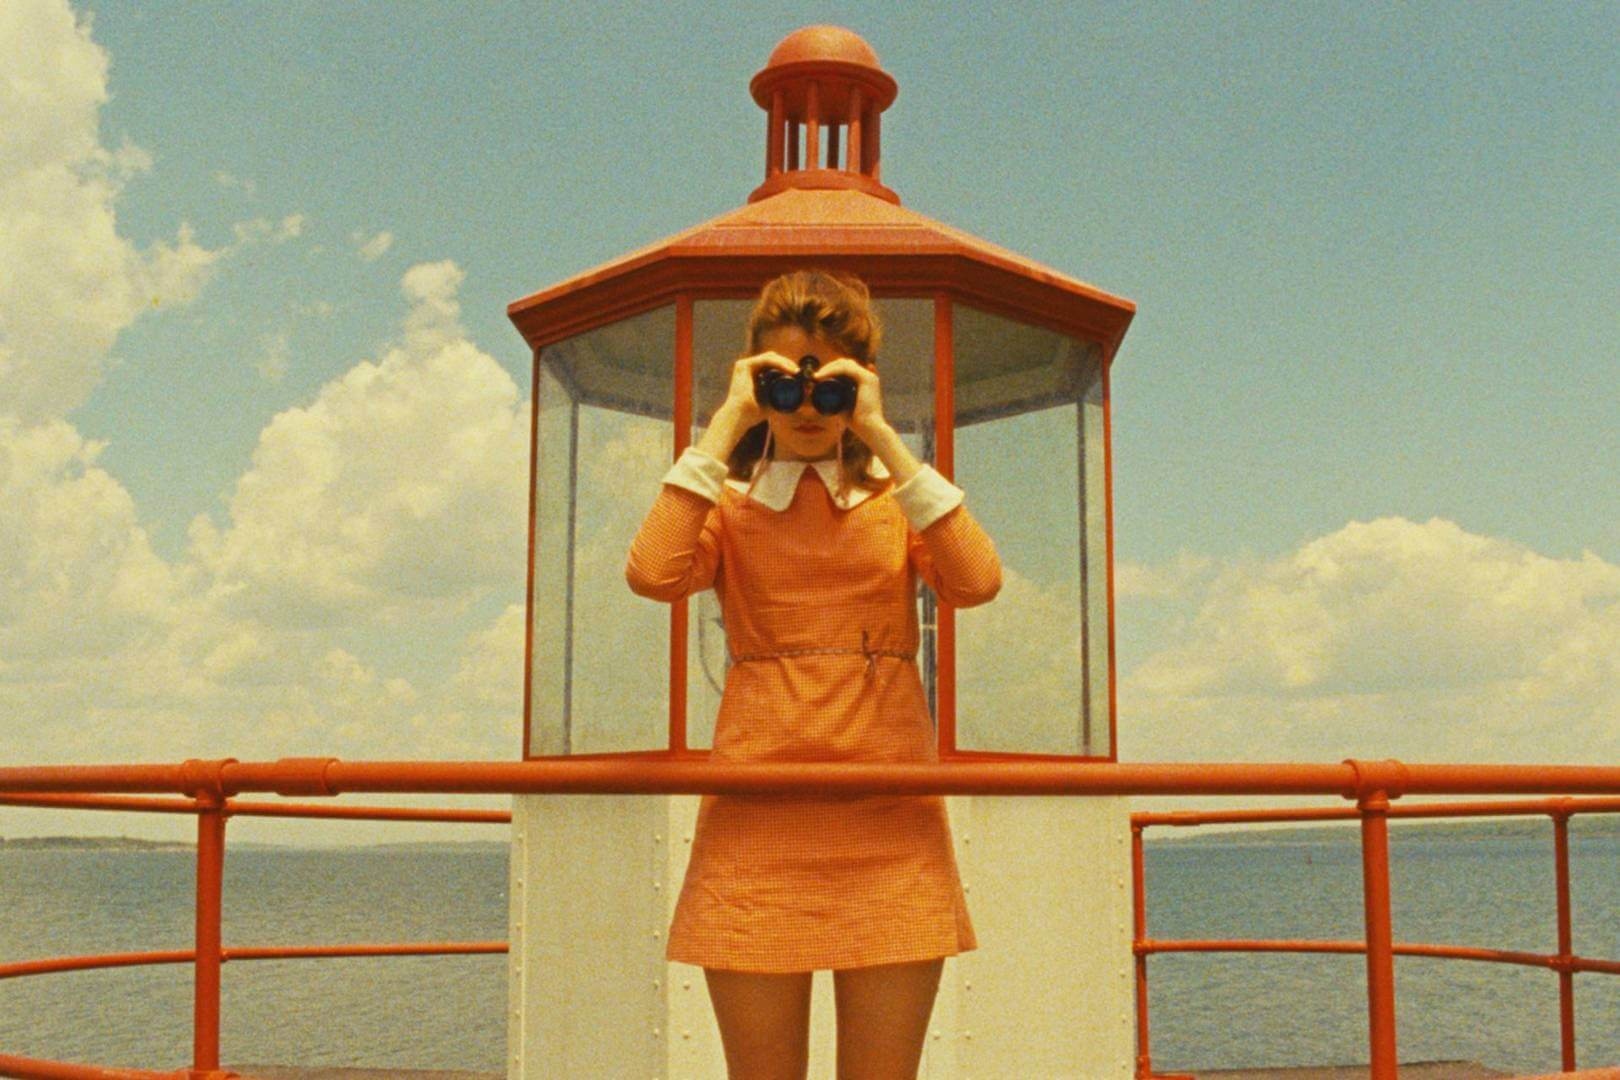 At the center of everything · Wes Anderson cinematography